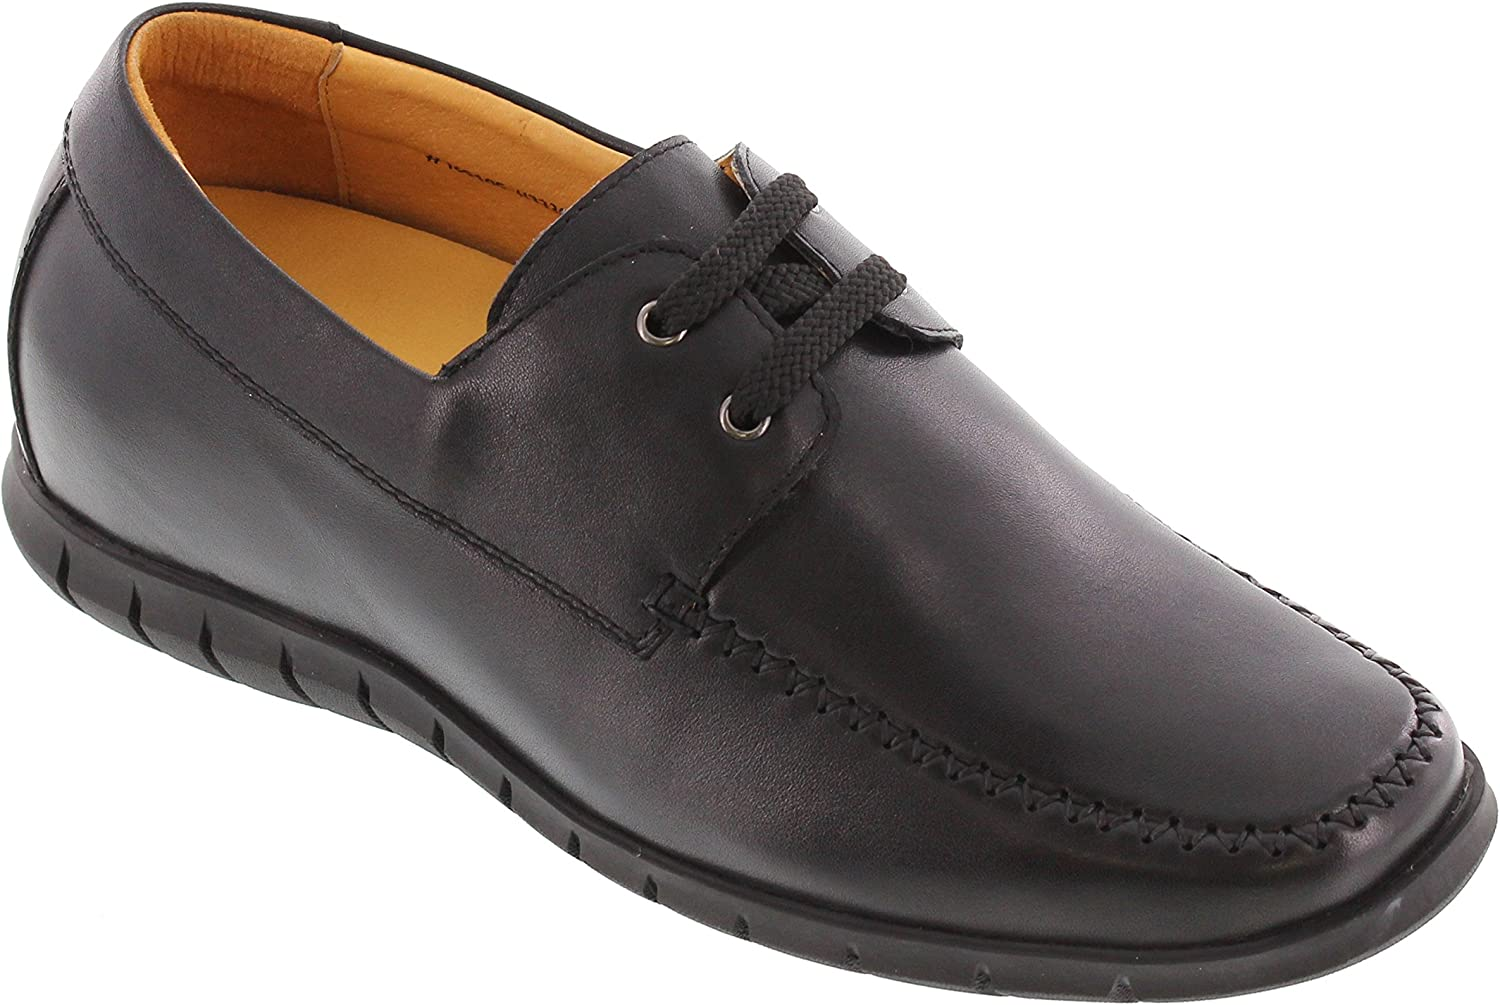 Toto Men's Invisible Height Increasing Elevator shoes - Black Leather Lace-up Super Lightweight Casual shoes - 2.6 Inches Taller - H33309